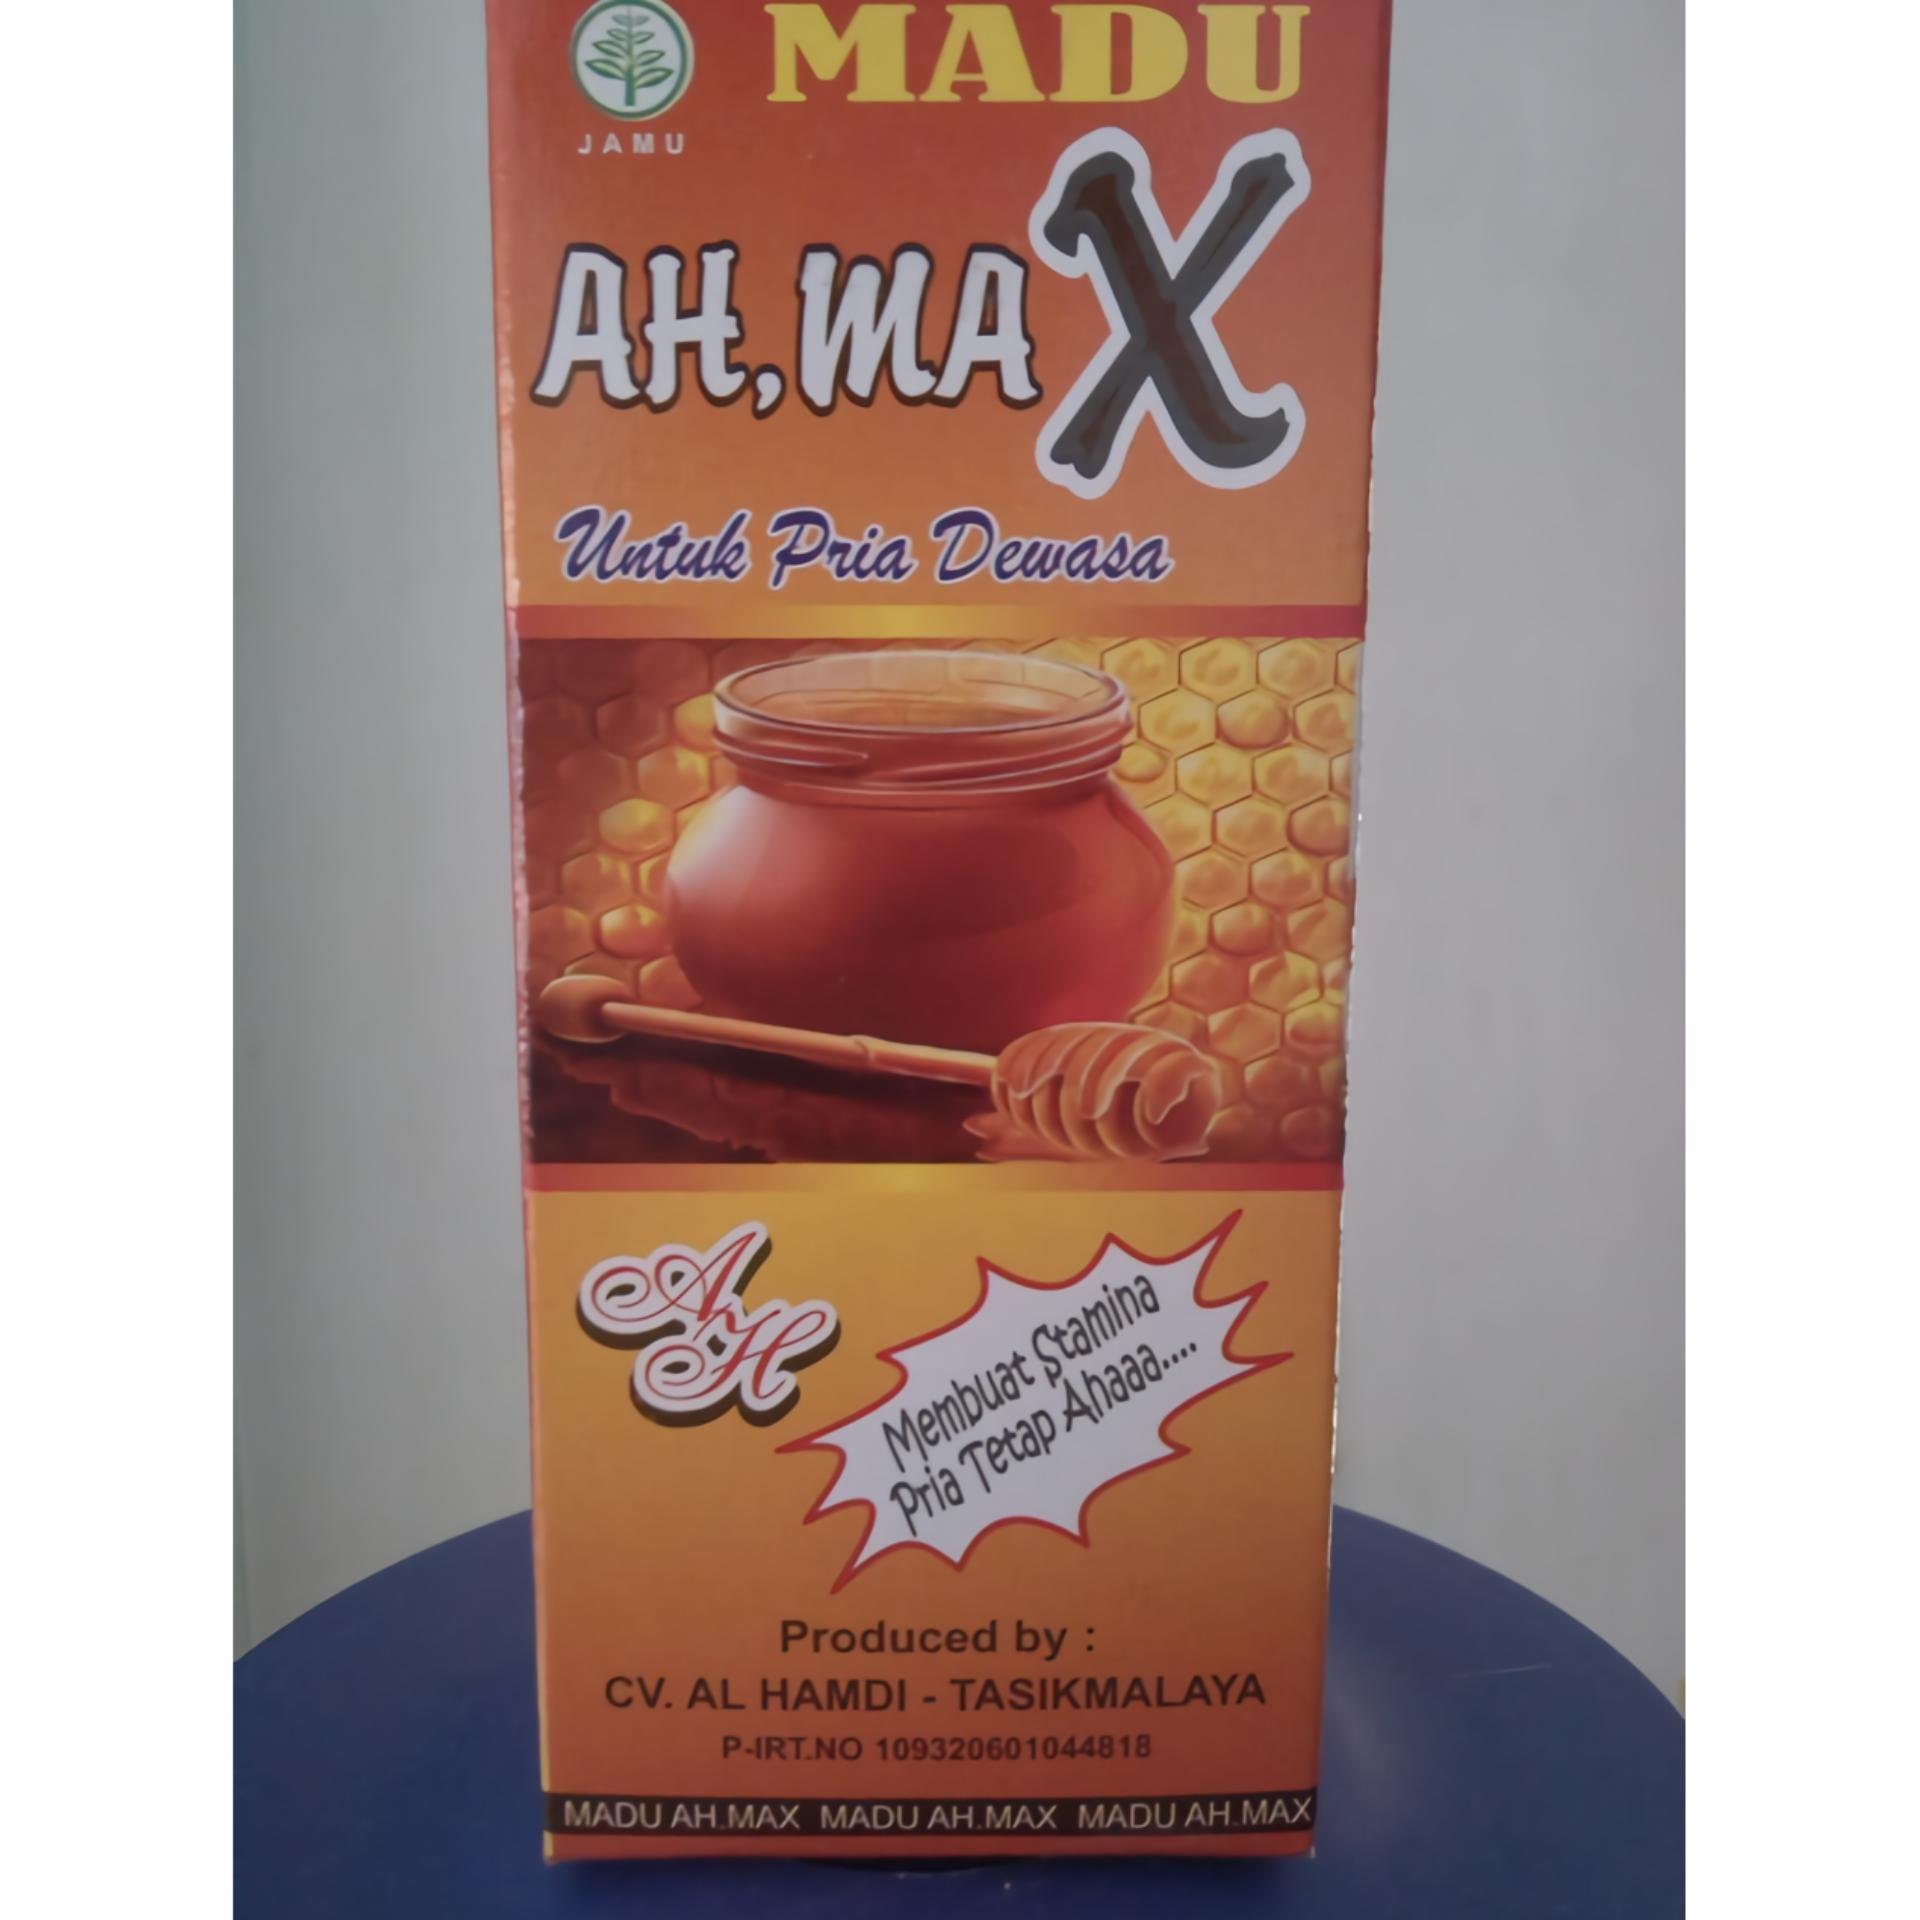 Review Madu Super Hajar Joss Ah Max Asli Tahan Lama Kuat Hot Deals Lanang Original Herbal Suplemen Pria Flash Sale